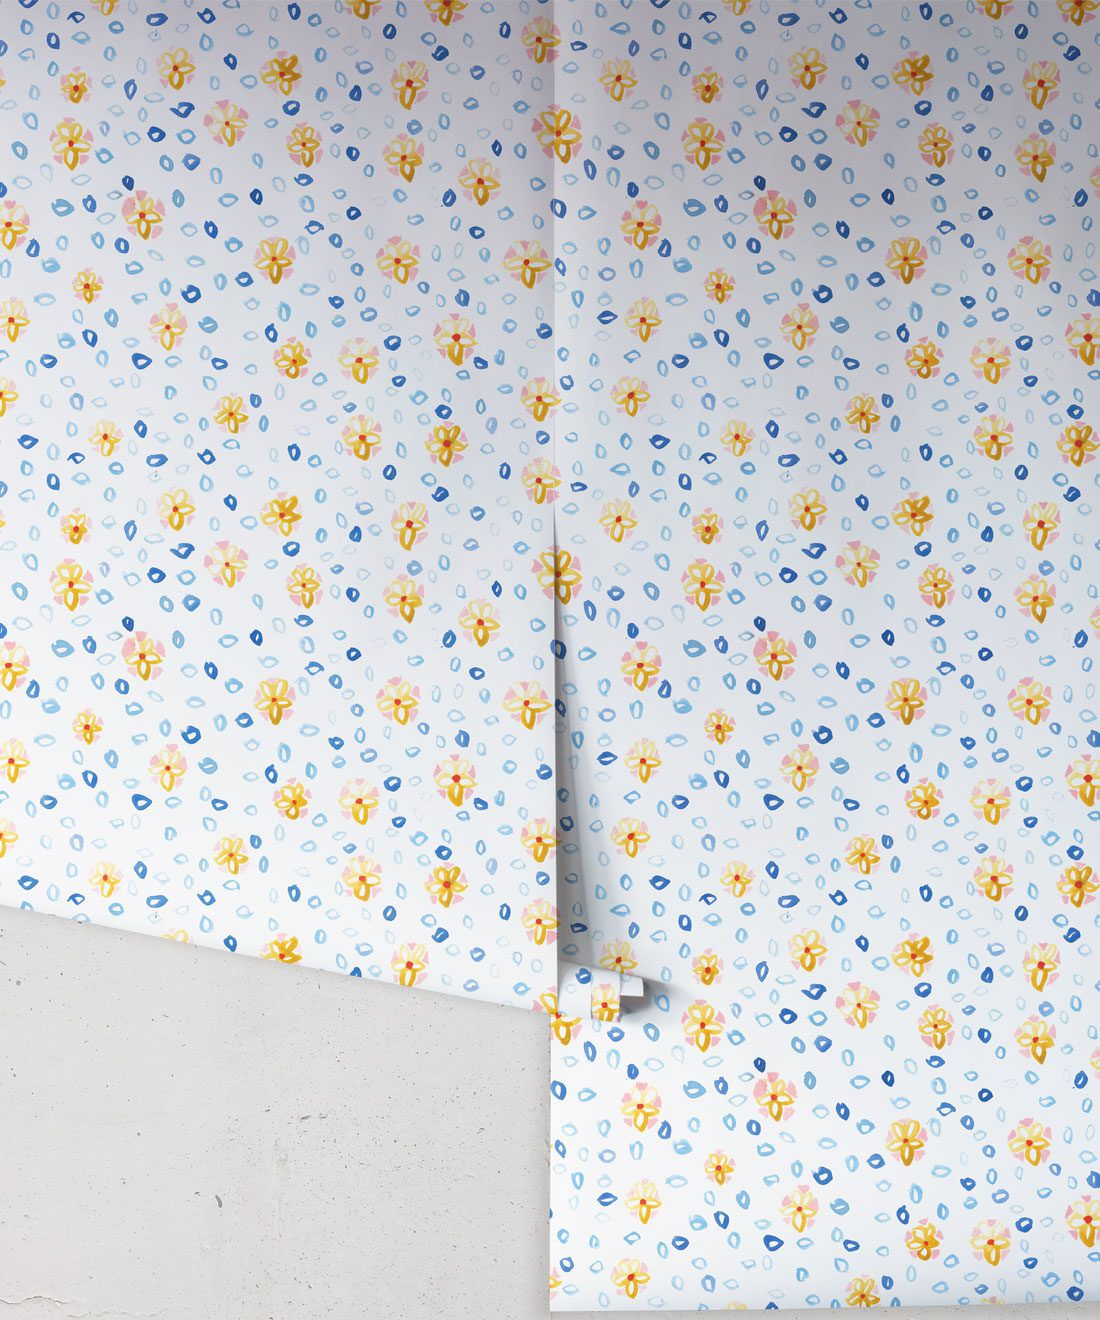 Al Hadiqa Wallpaper • Dainty Floral Design • Inky Flowery Pattern • Milton & King USA • Wallpaper Rolls • Free Shipping